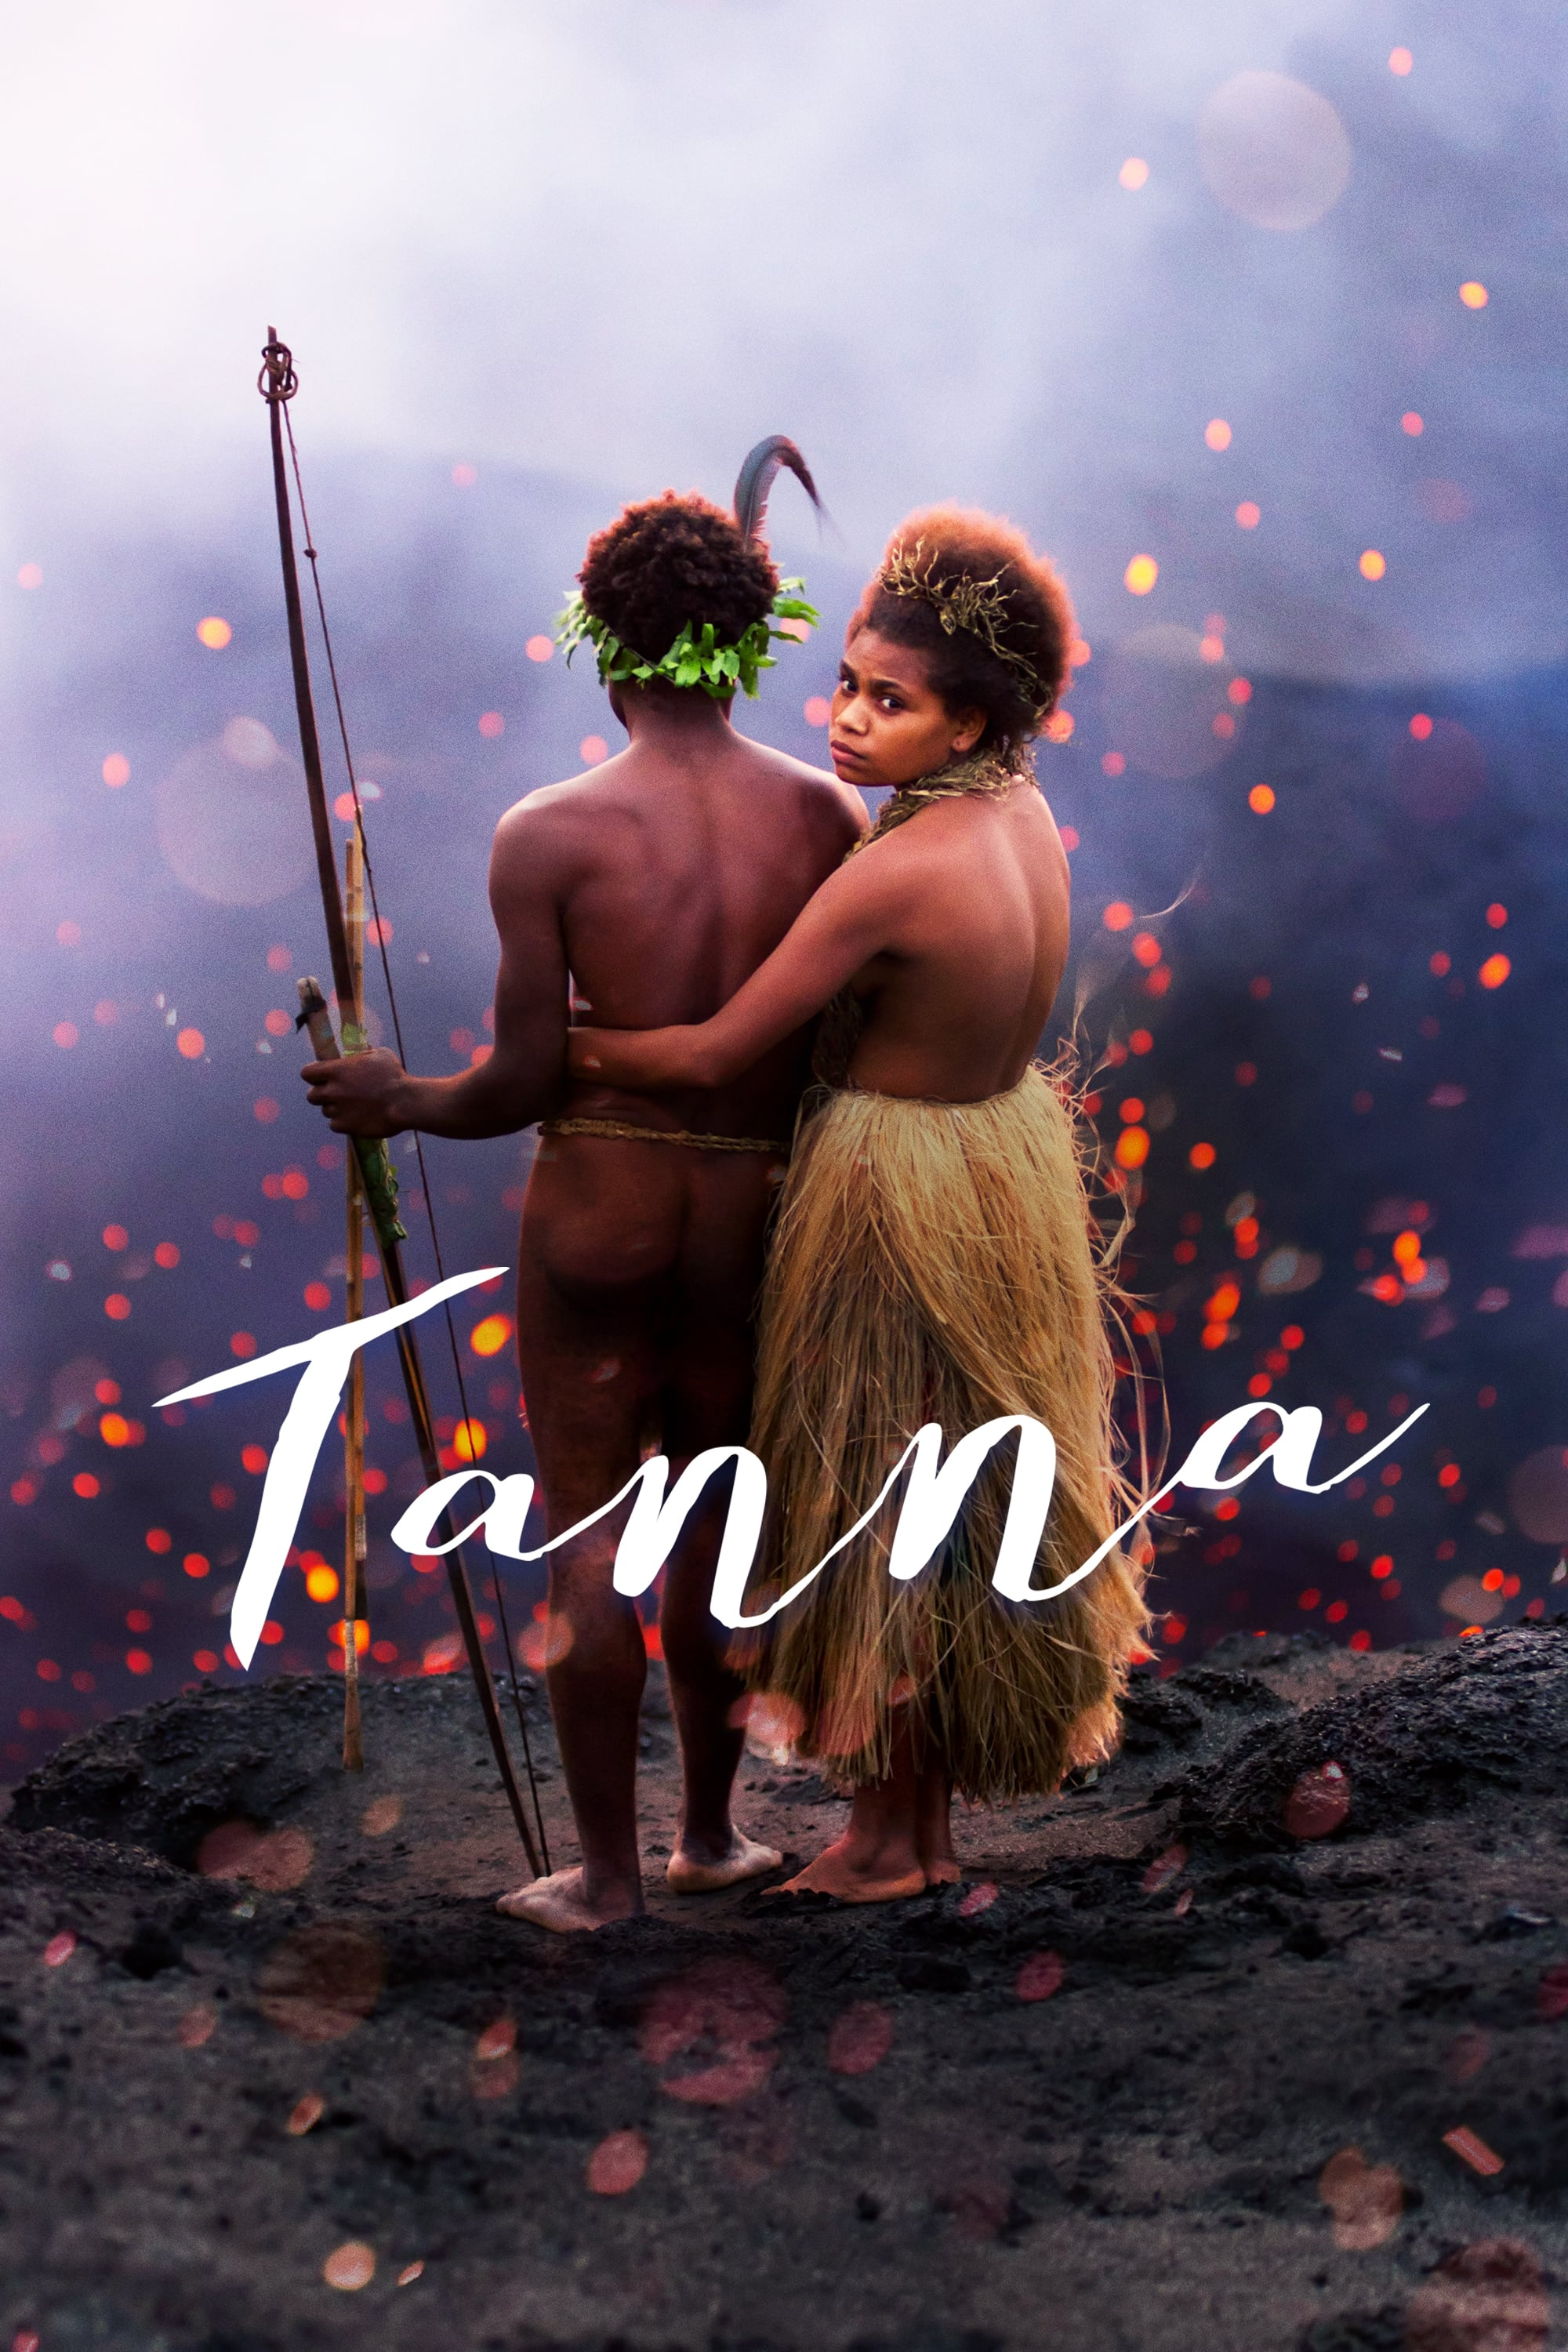 Tanna on FREECABLE TV